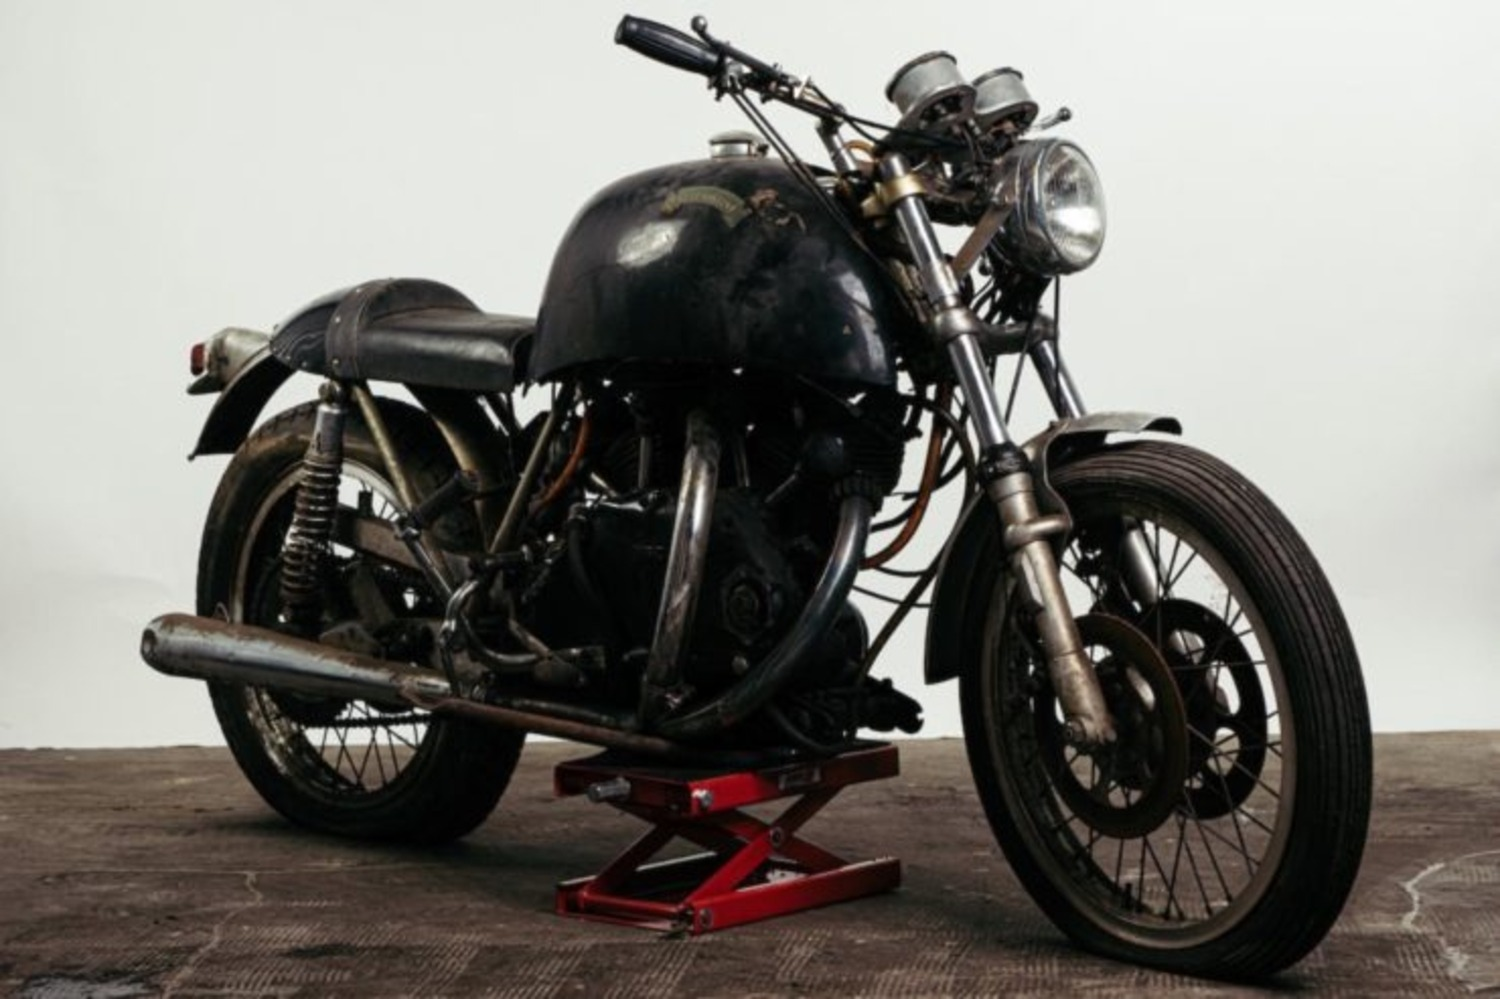 Egli-Vincent Black Shadow: la supermoto anni '50 all'asta